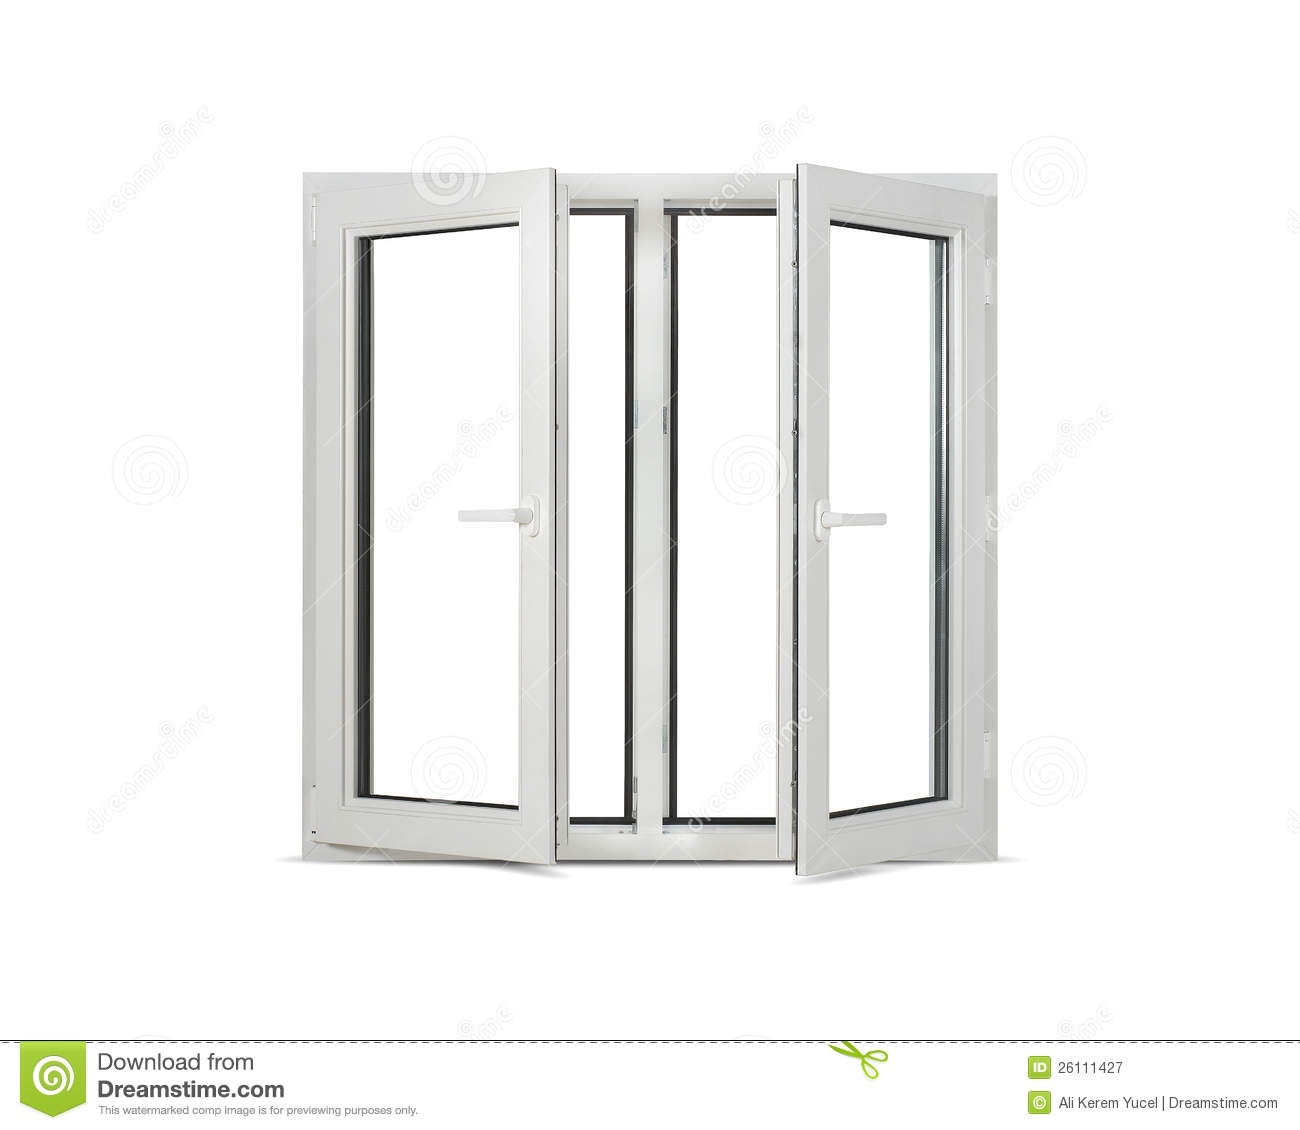 Plastic pvc window on white blank background stock image for Window plastic